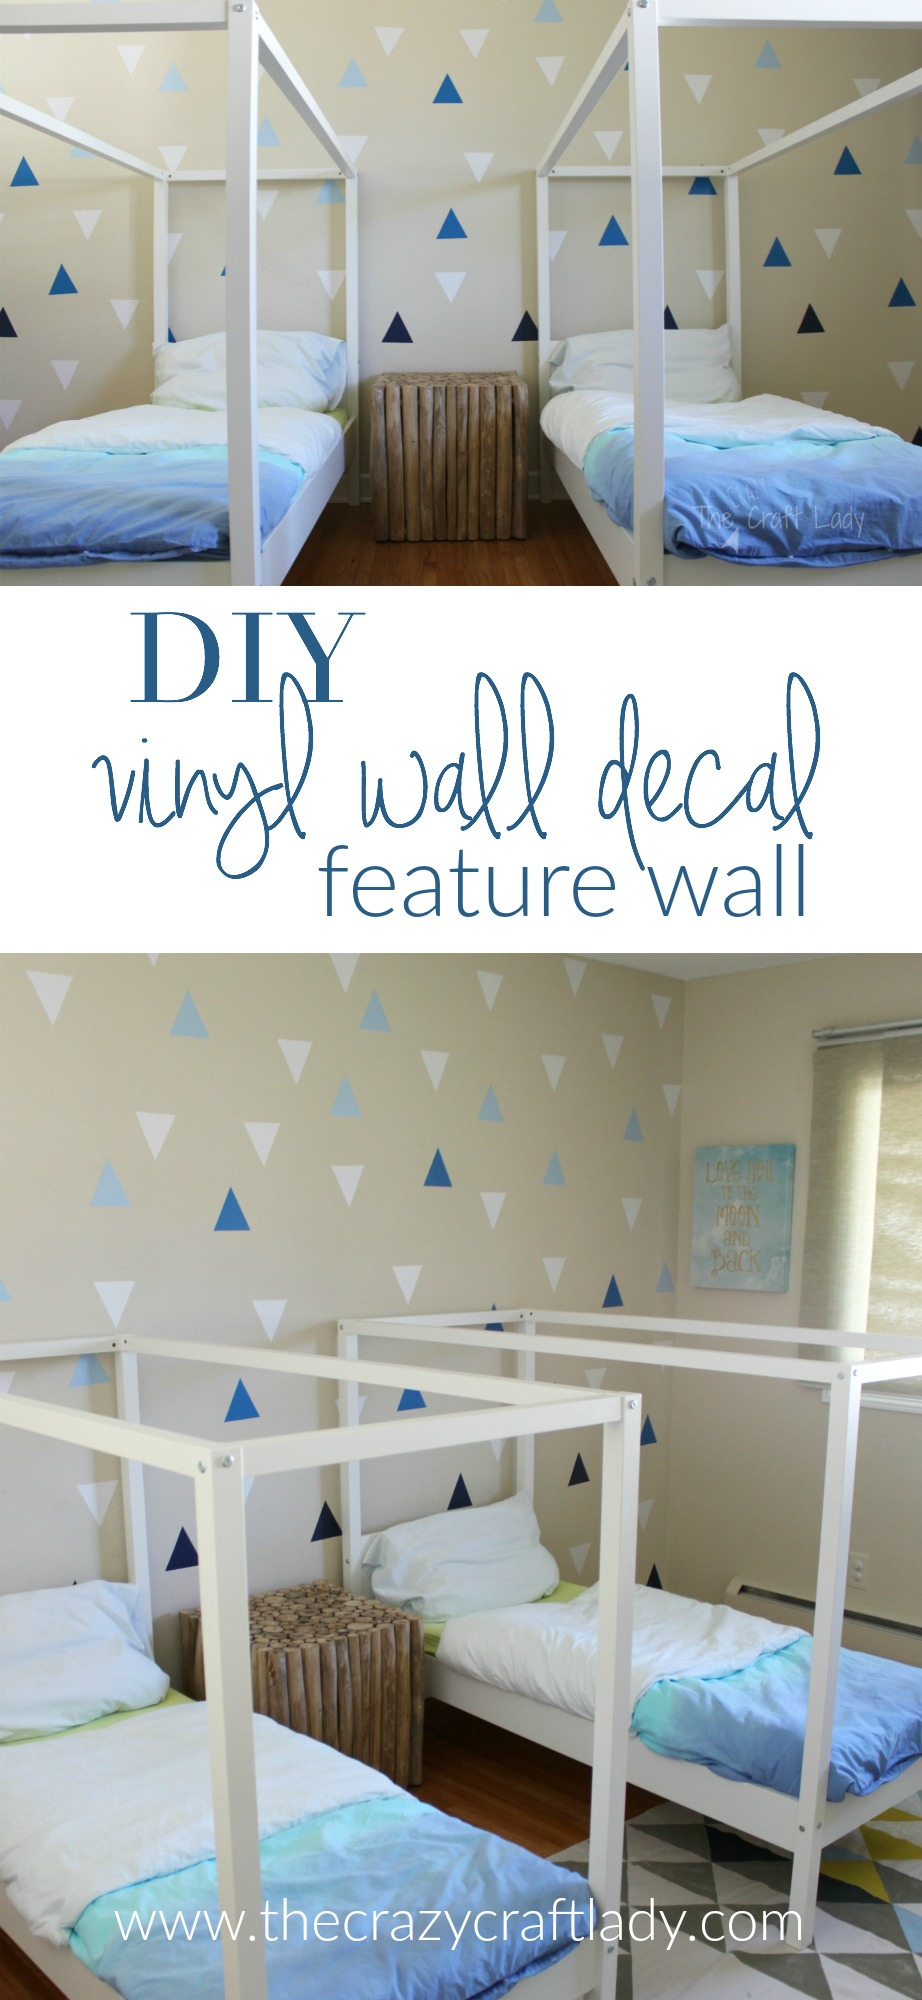 Feature wall diy decor